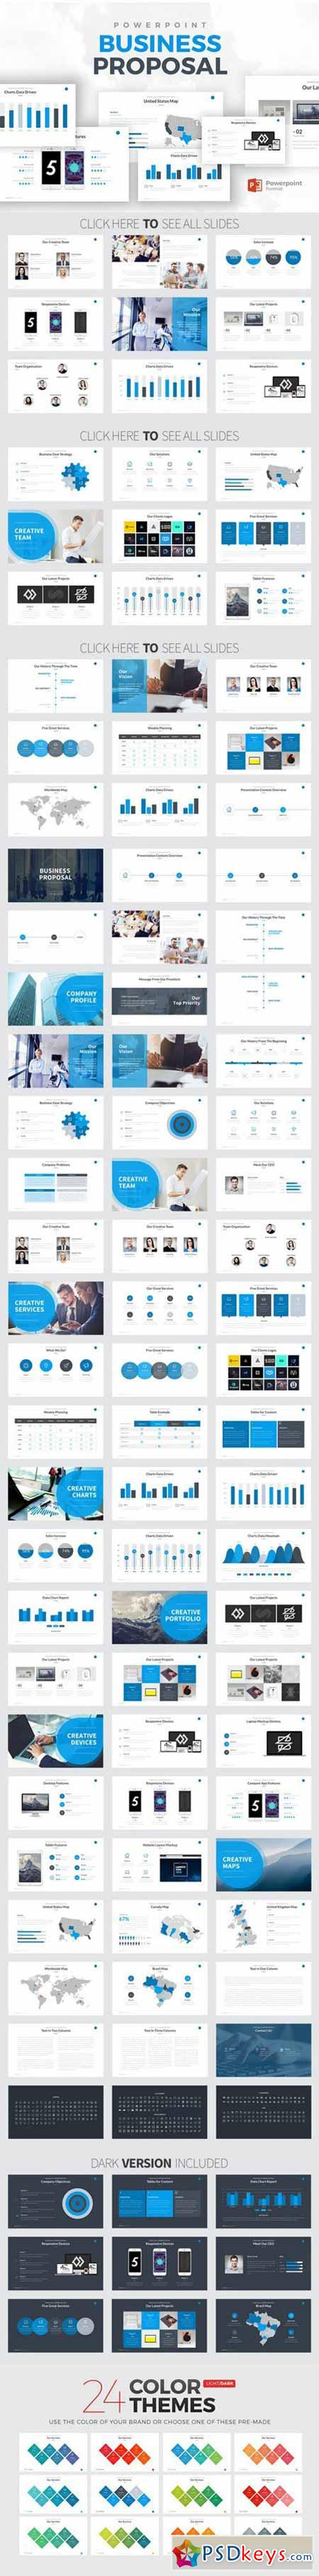 business proposal powerpoint 575444 » free download photoshop, Powerpoint templates